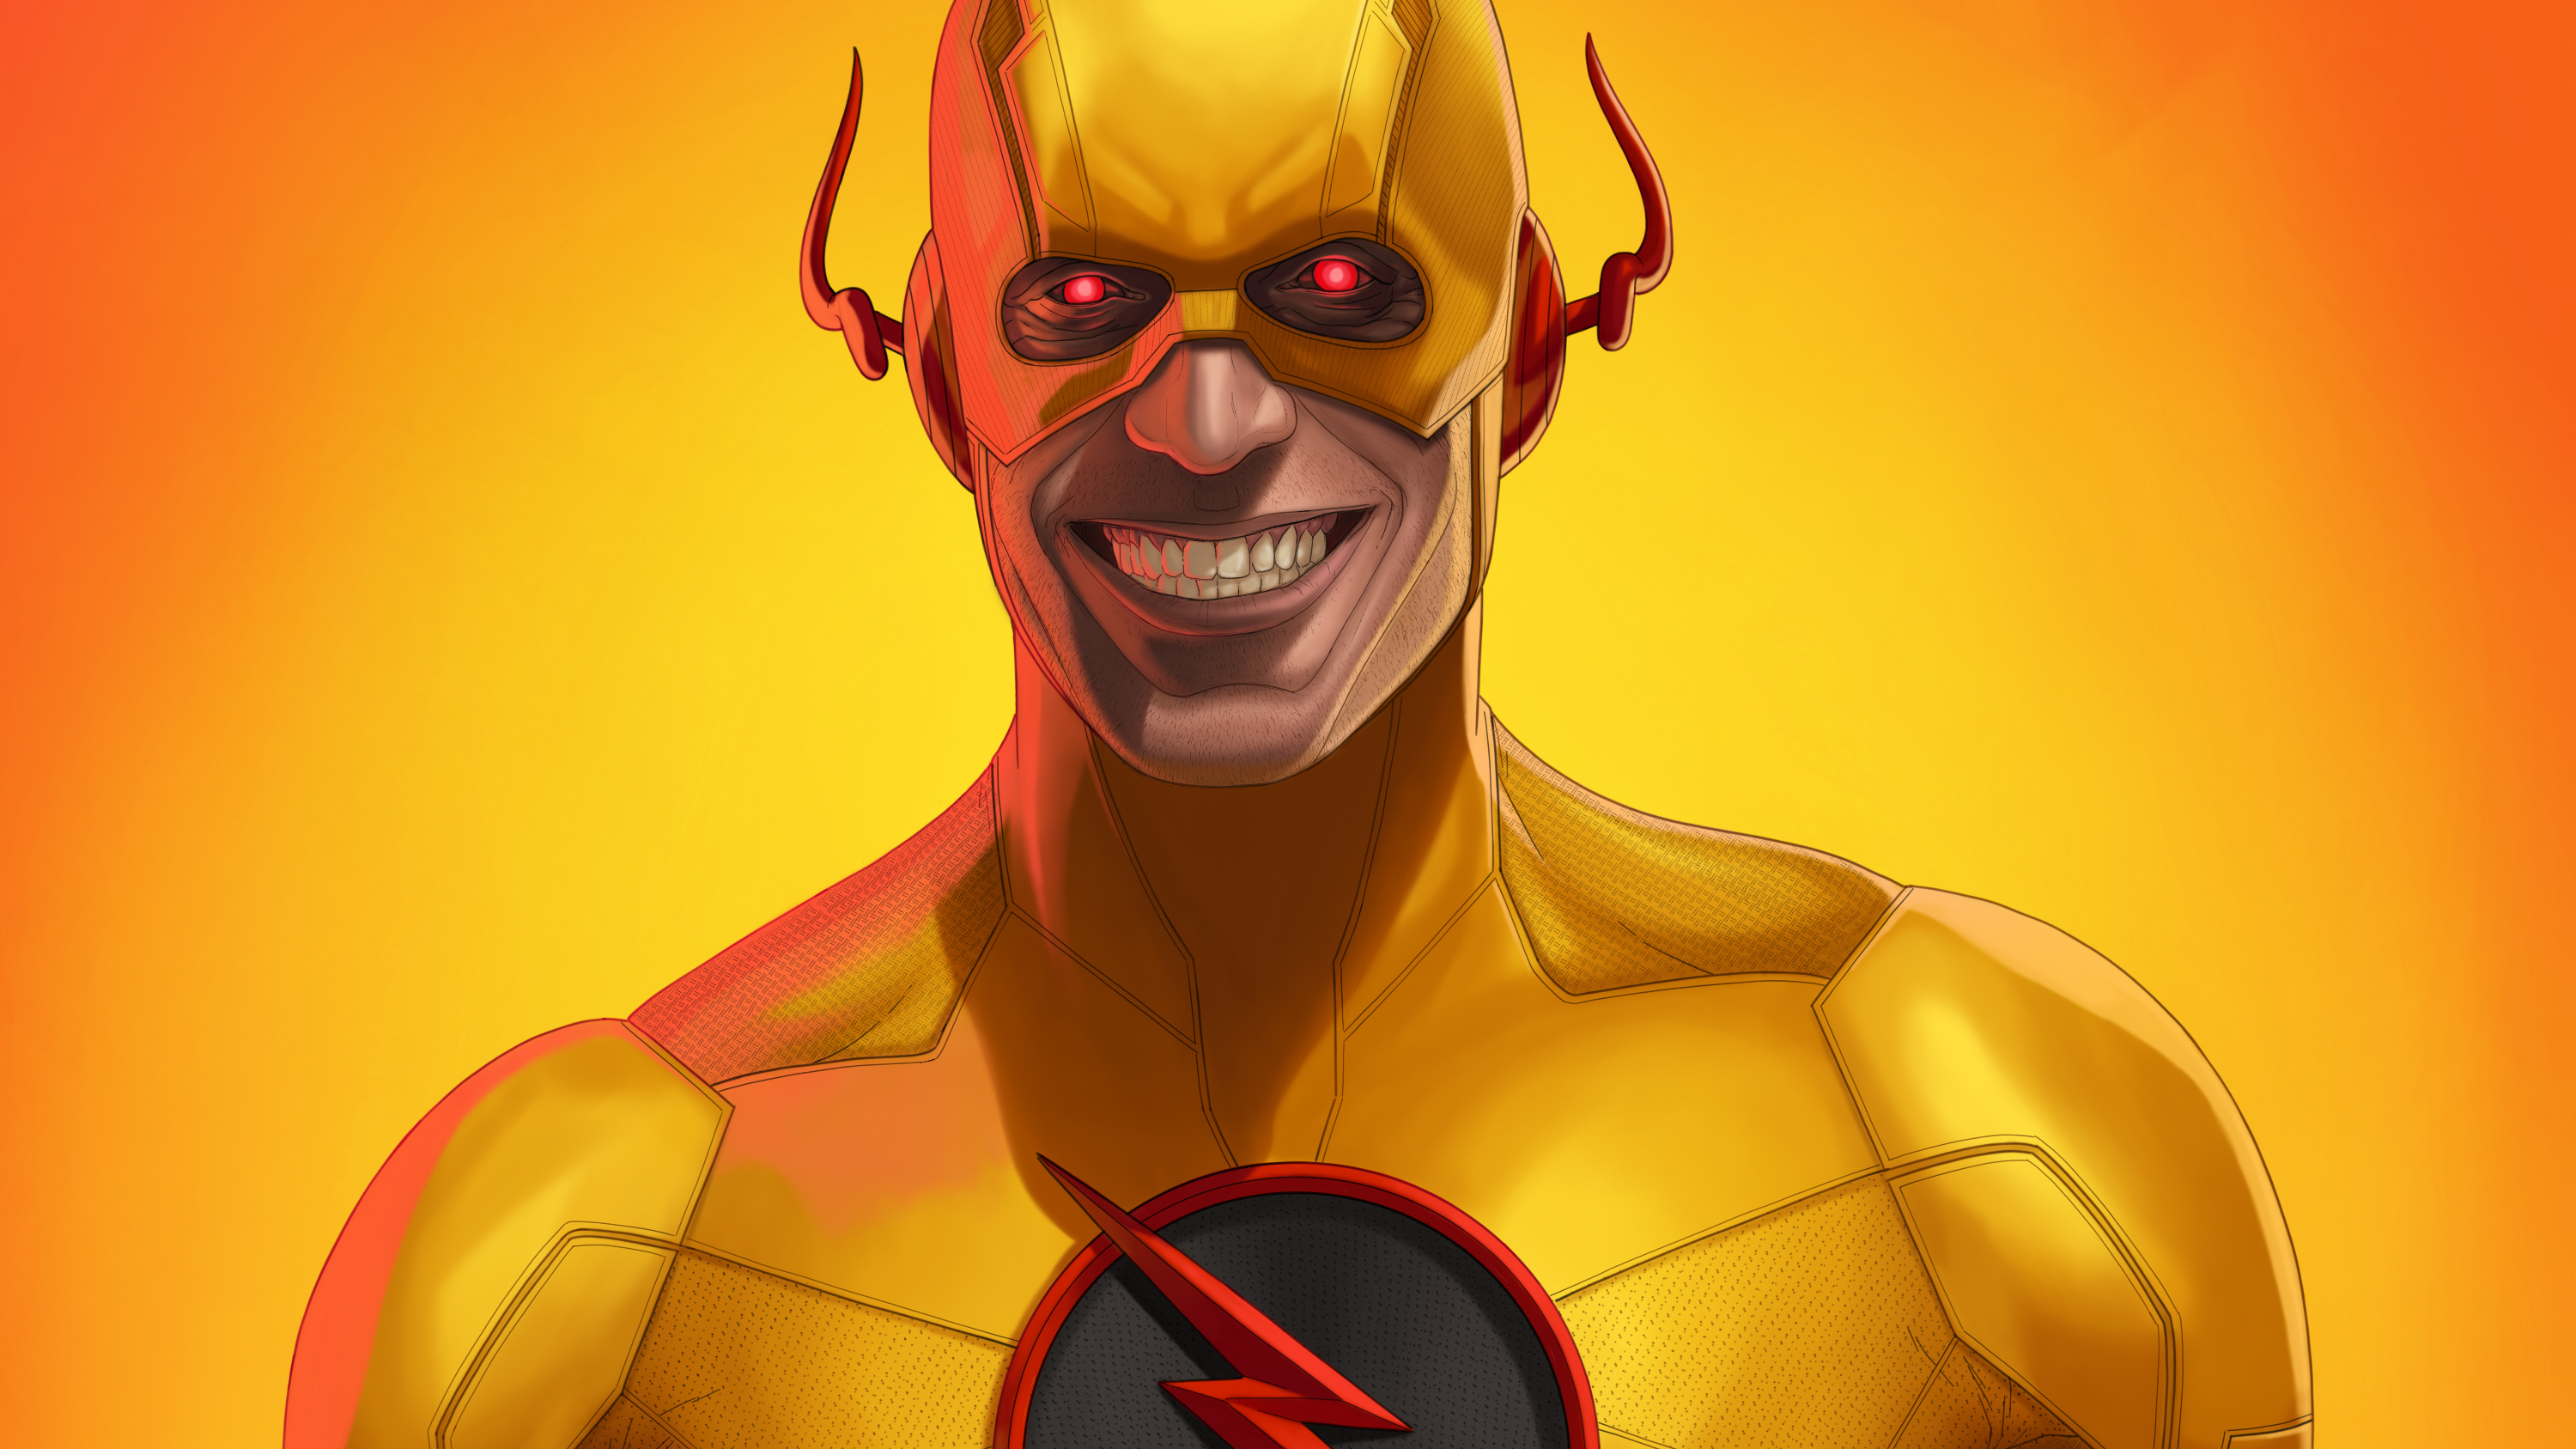 Reverse Flash Hd Wallpaper Reverse Flash Wallpaper 4k 311787